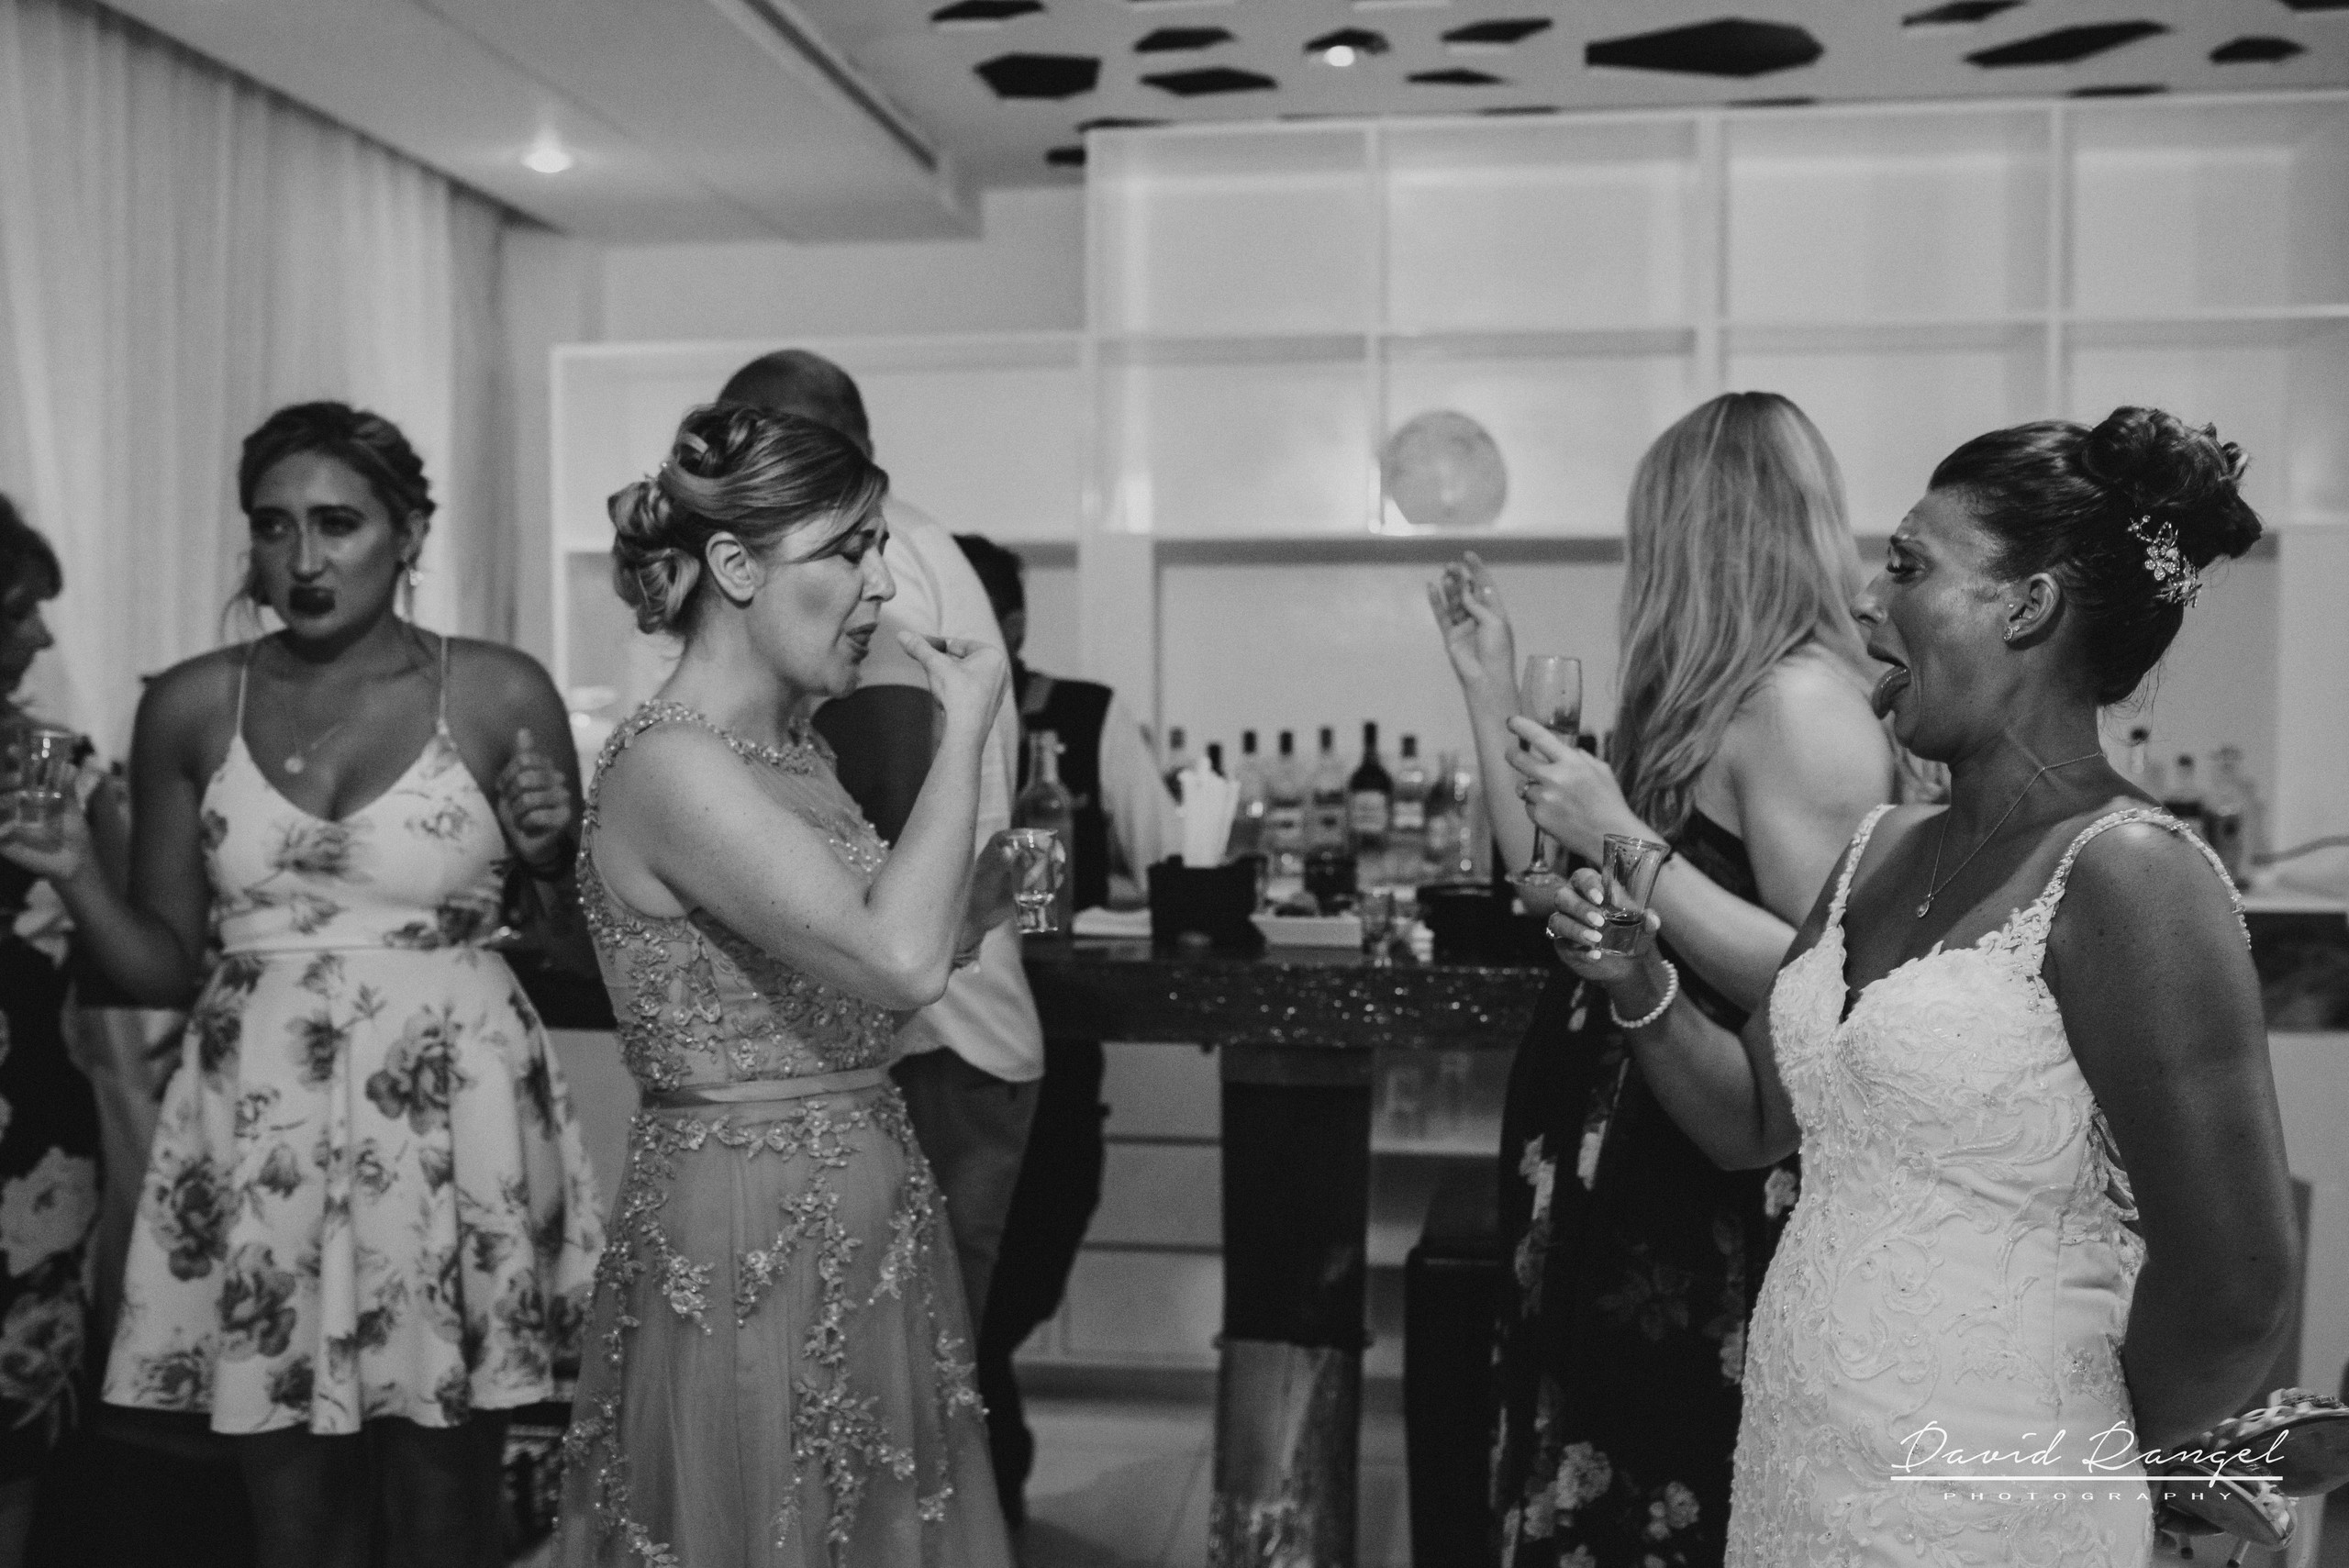 tequila+shots+bride+maid+of+honor